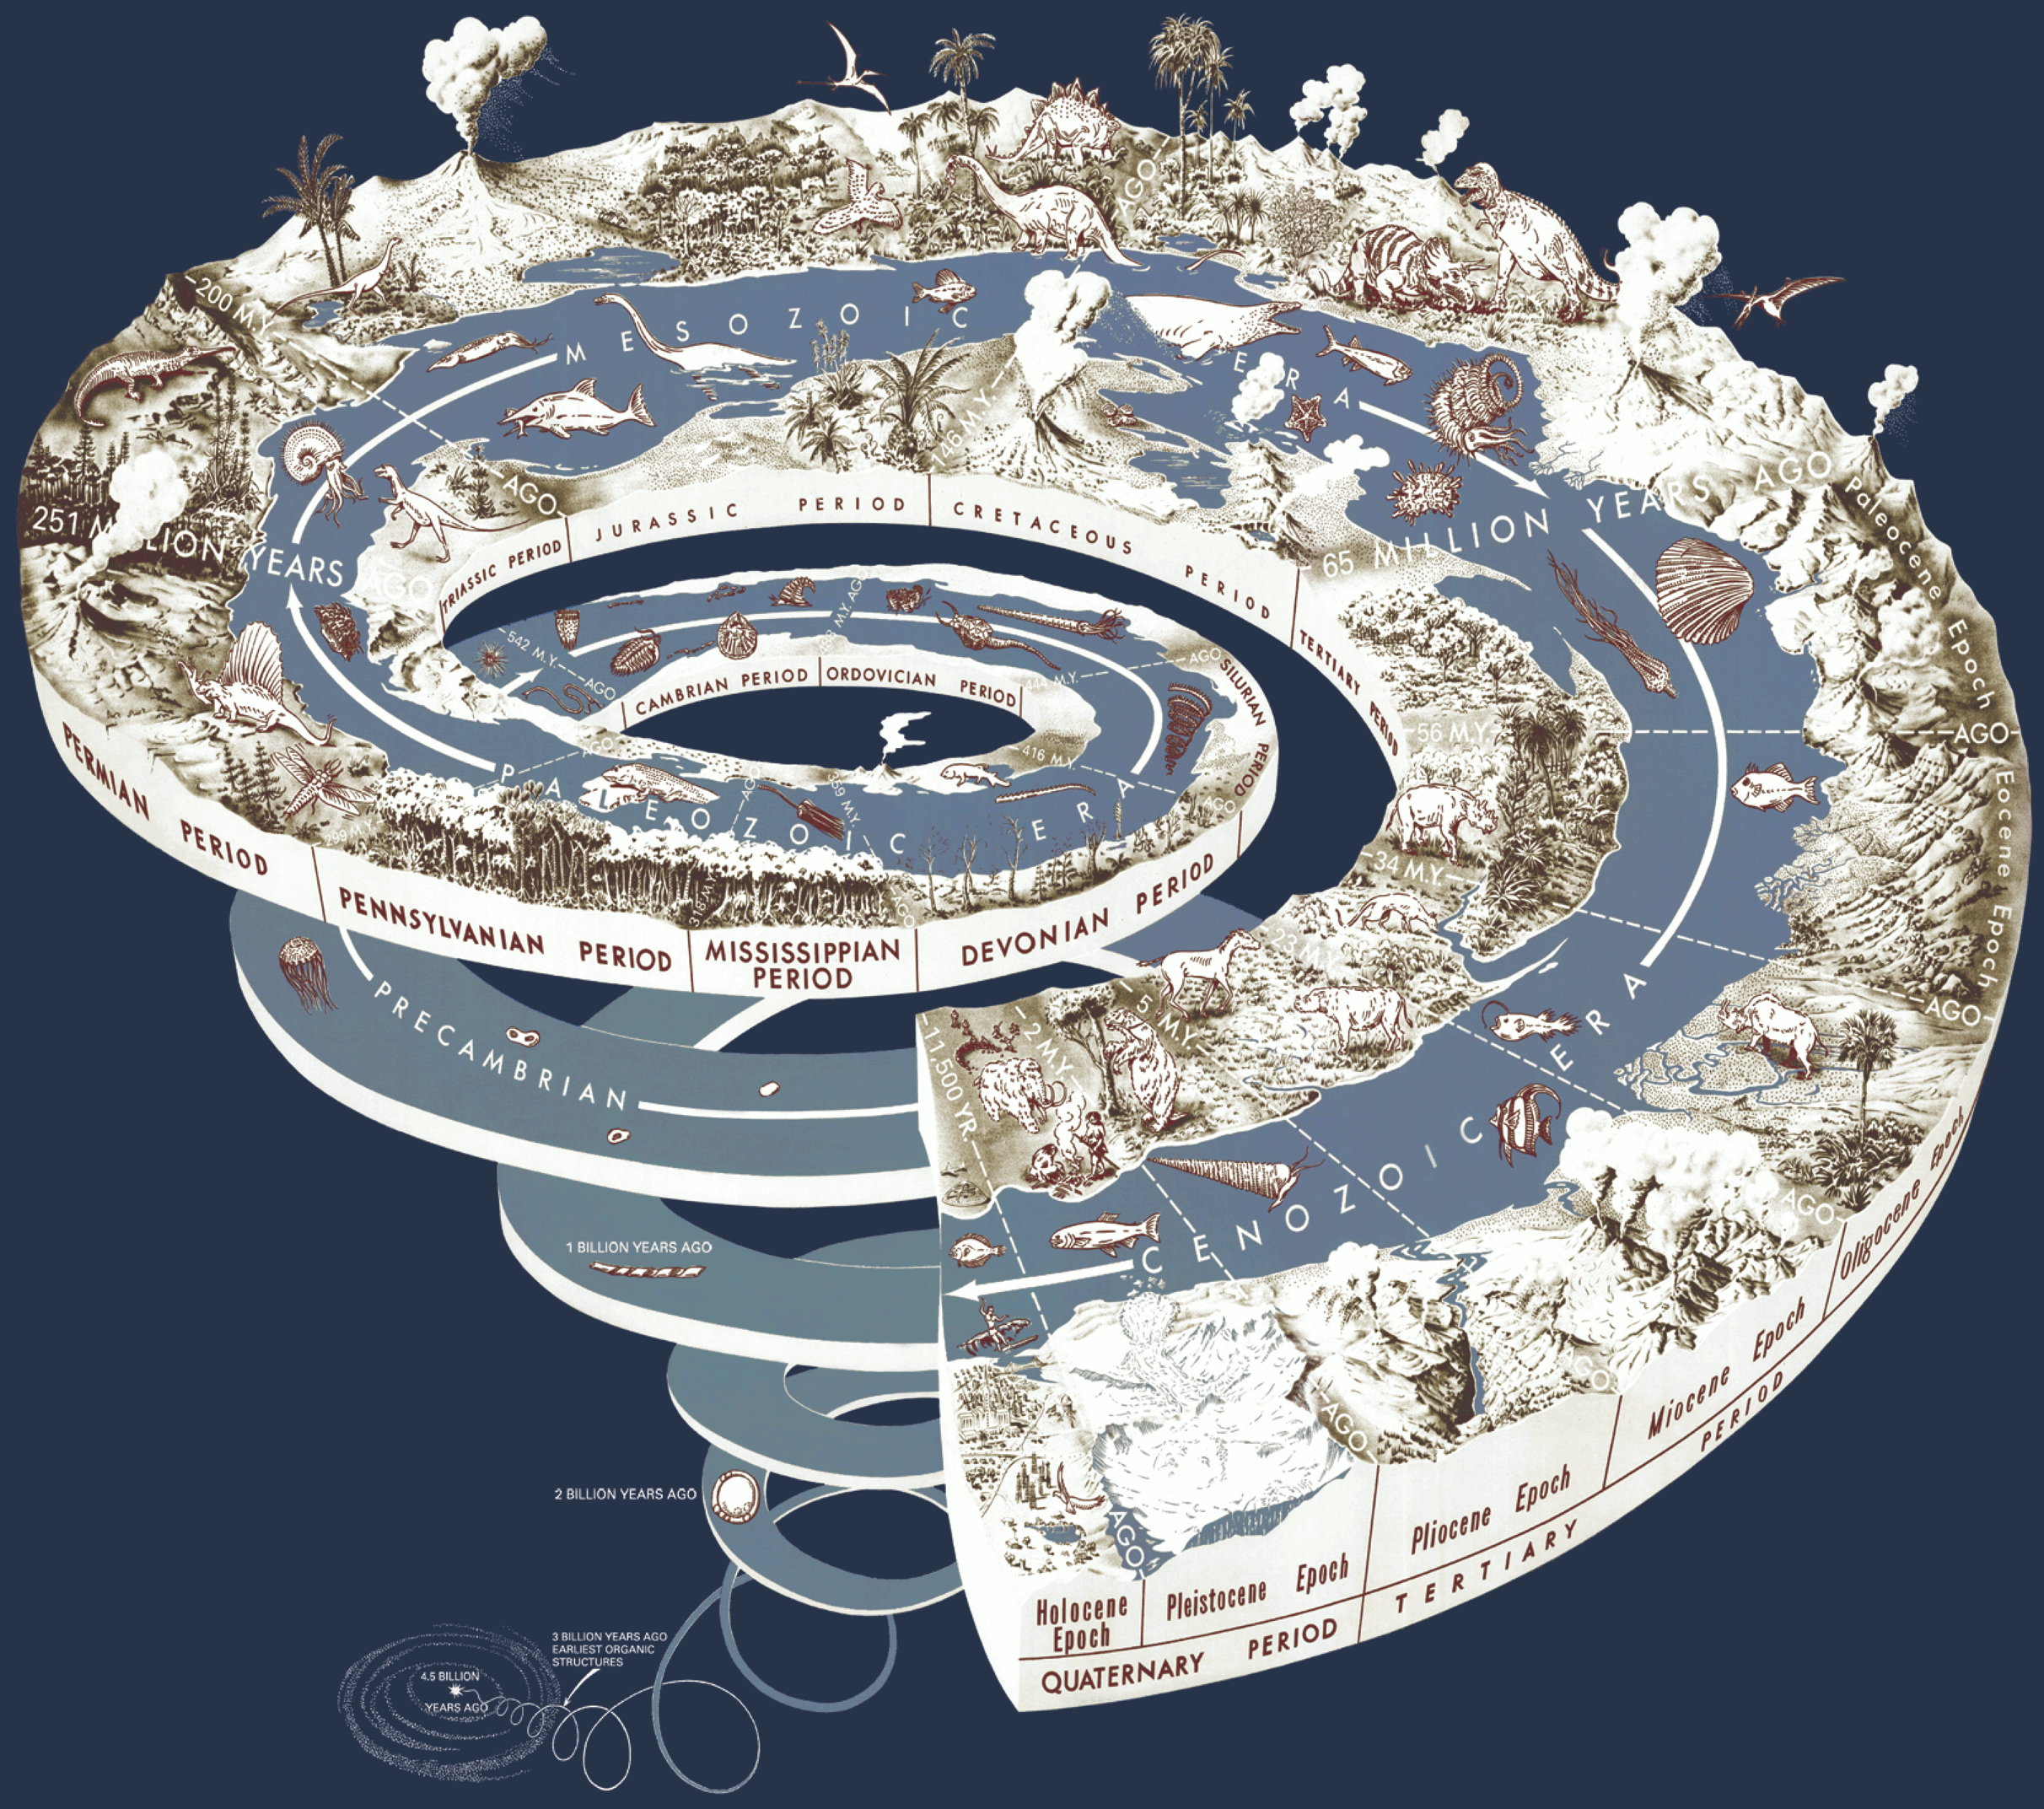 http://upload.wikimedia.org/wikipedia/commons/7/79/Geological_time_spiral.png